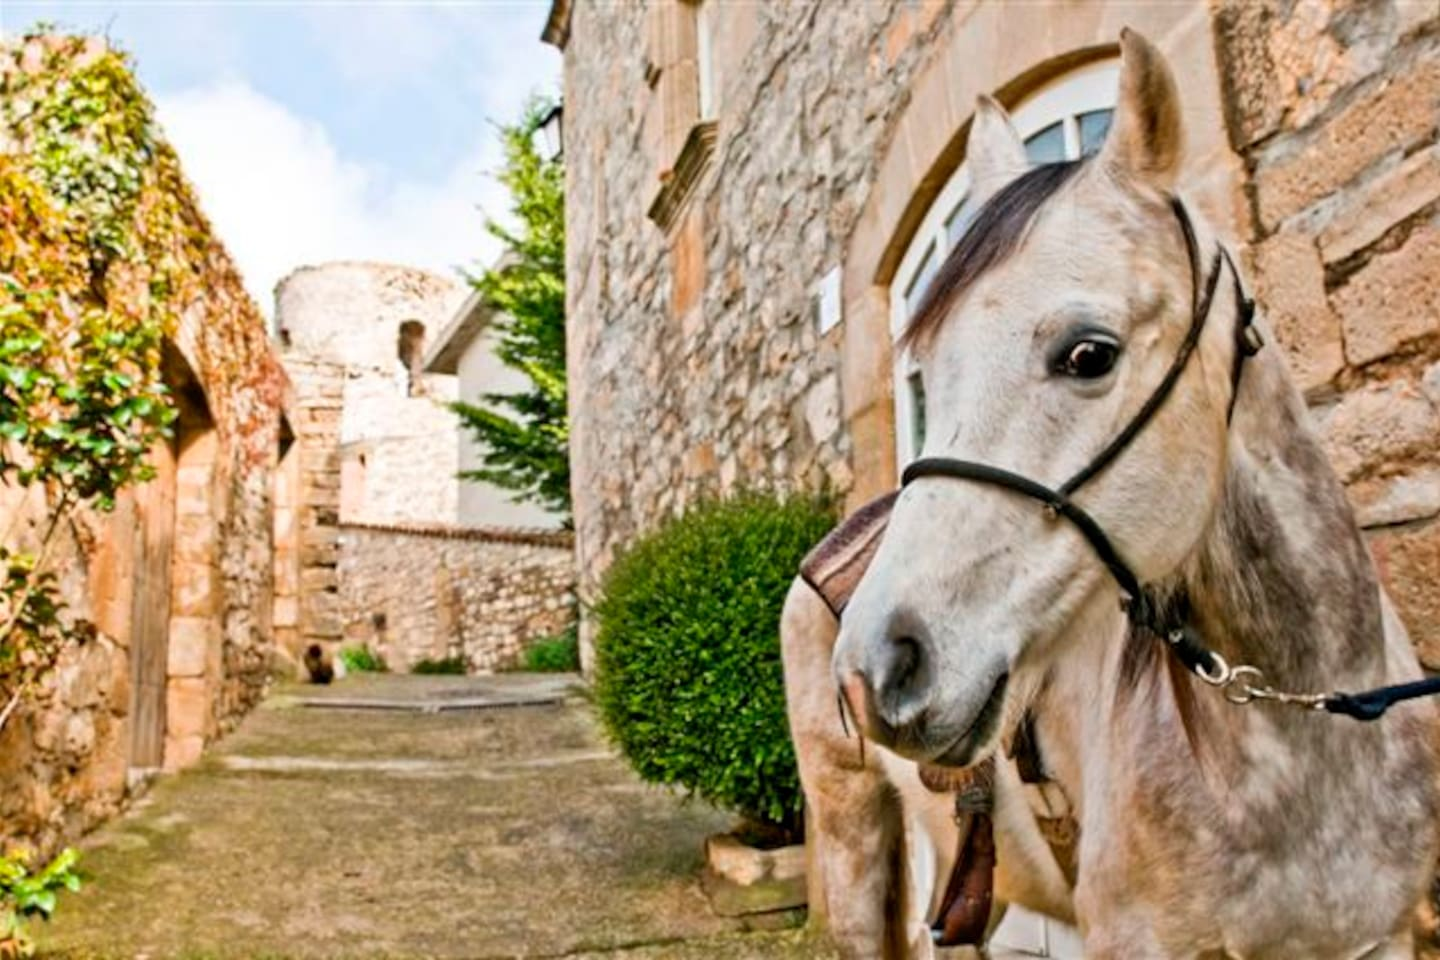 Guesthouse with horses in Barcelona